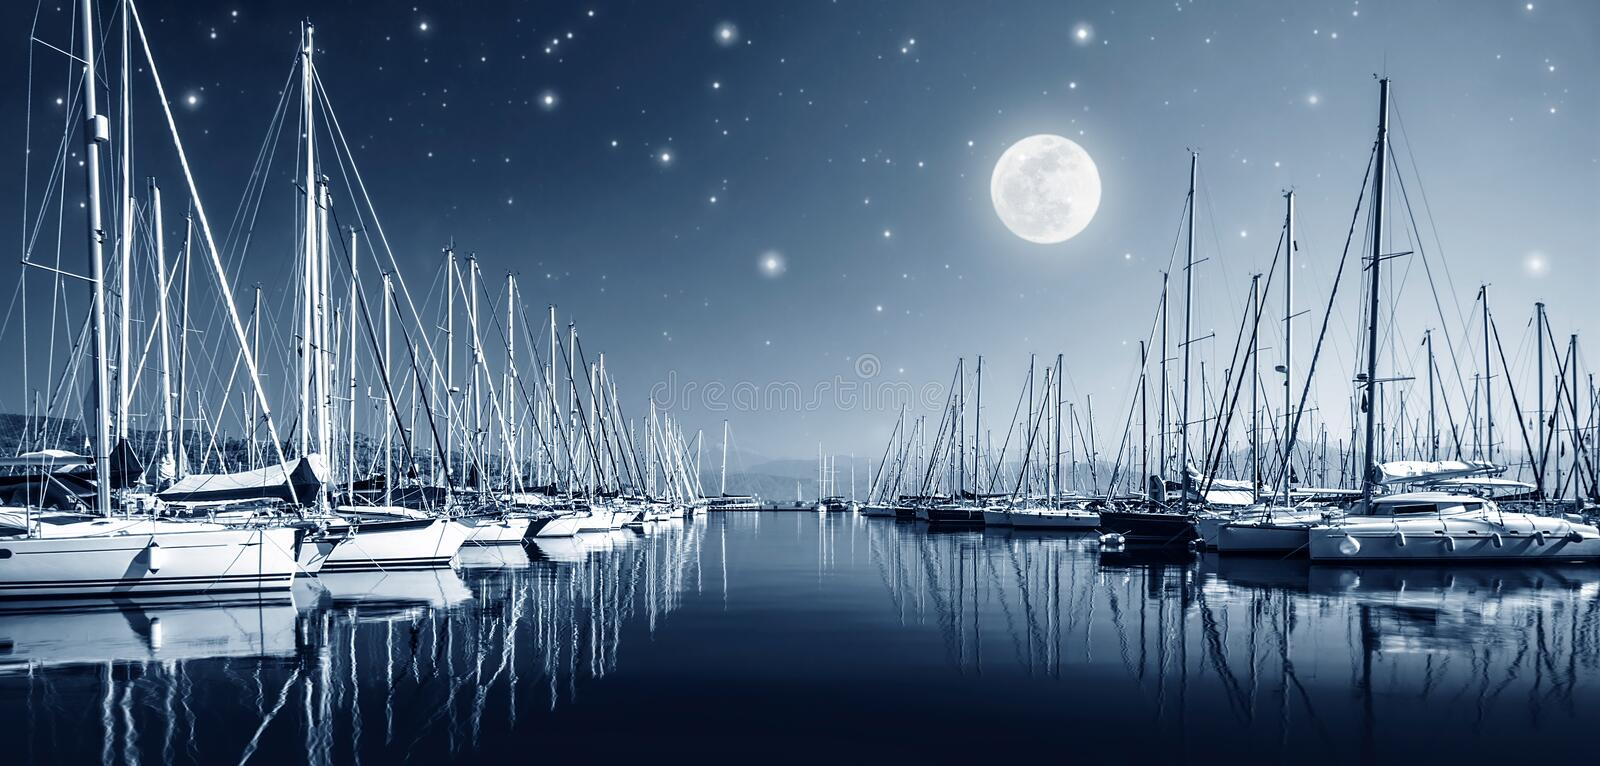 Yacht harbor at night stock images